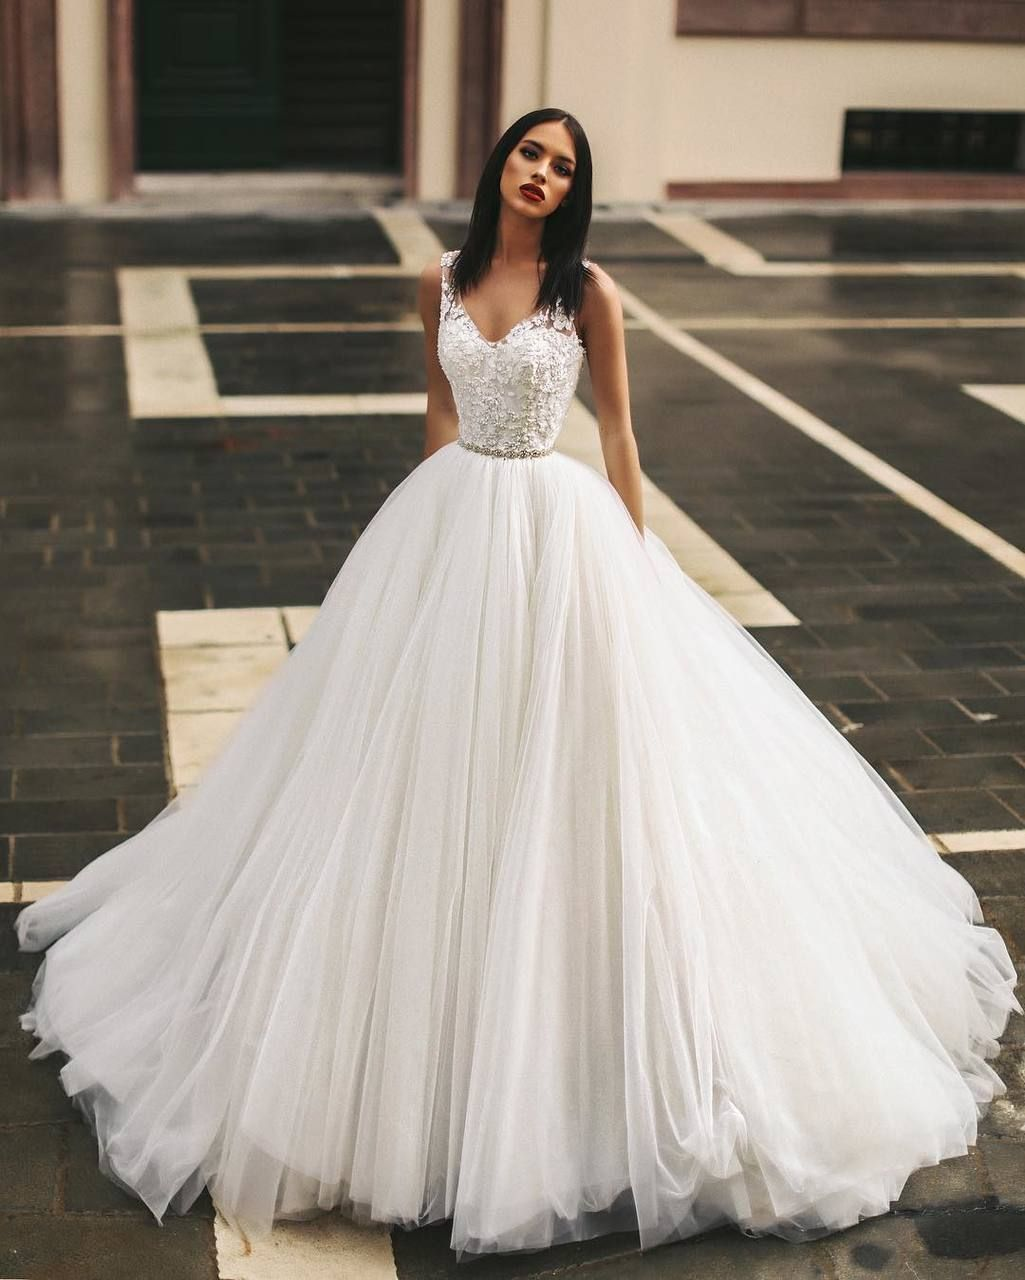 Naviblue 2019 Wedding Dresses Dolly Collection: Image Discovered By Fashion Dress Collection. Discover